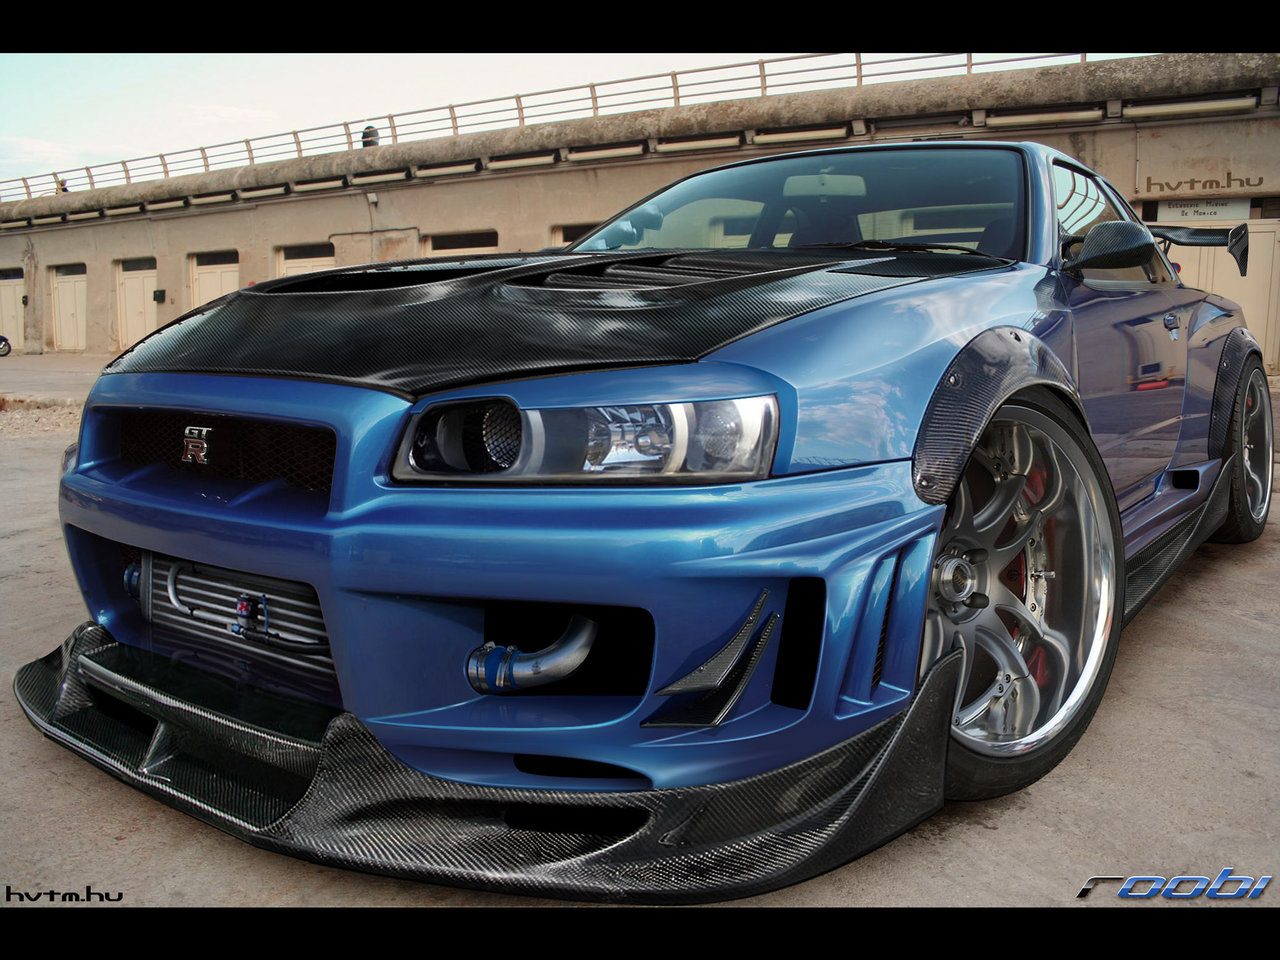 nissan skyline r34 wallpaper its my car club. Black Bedroom Furniture Sets. Home Design Ideas